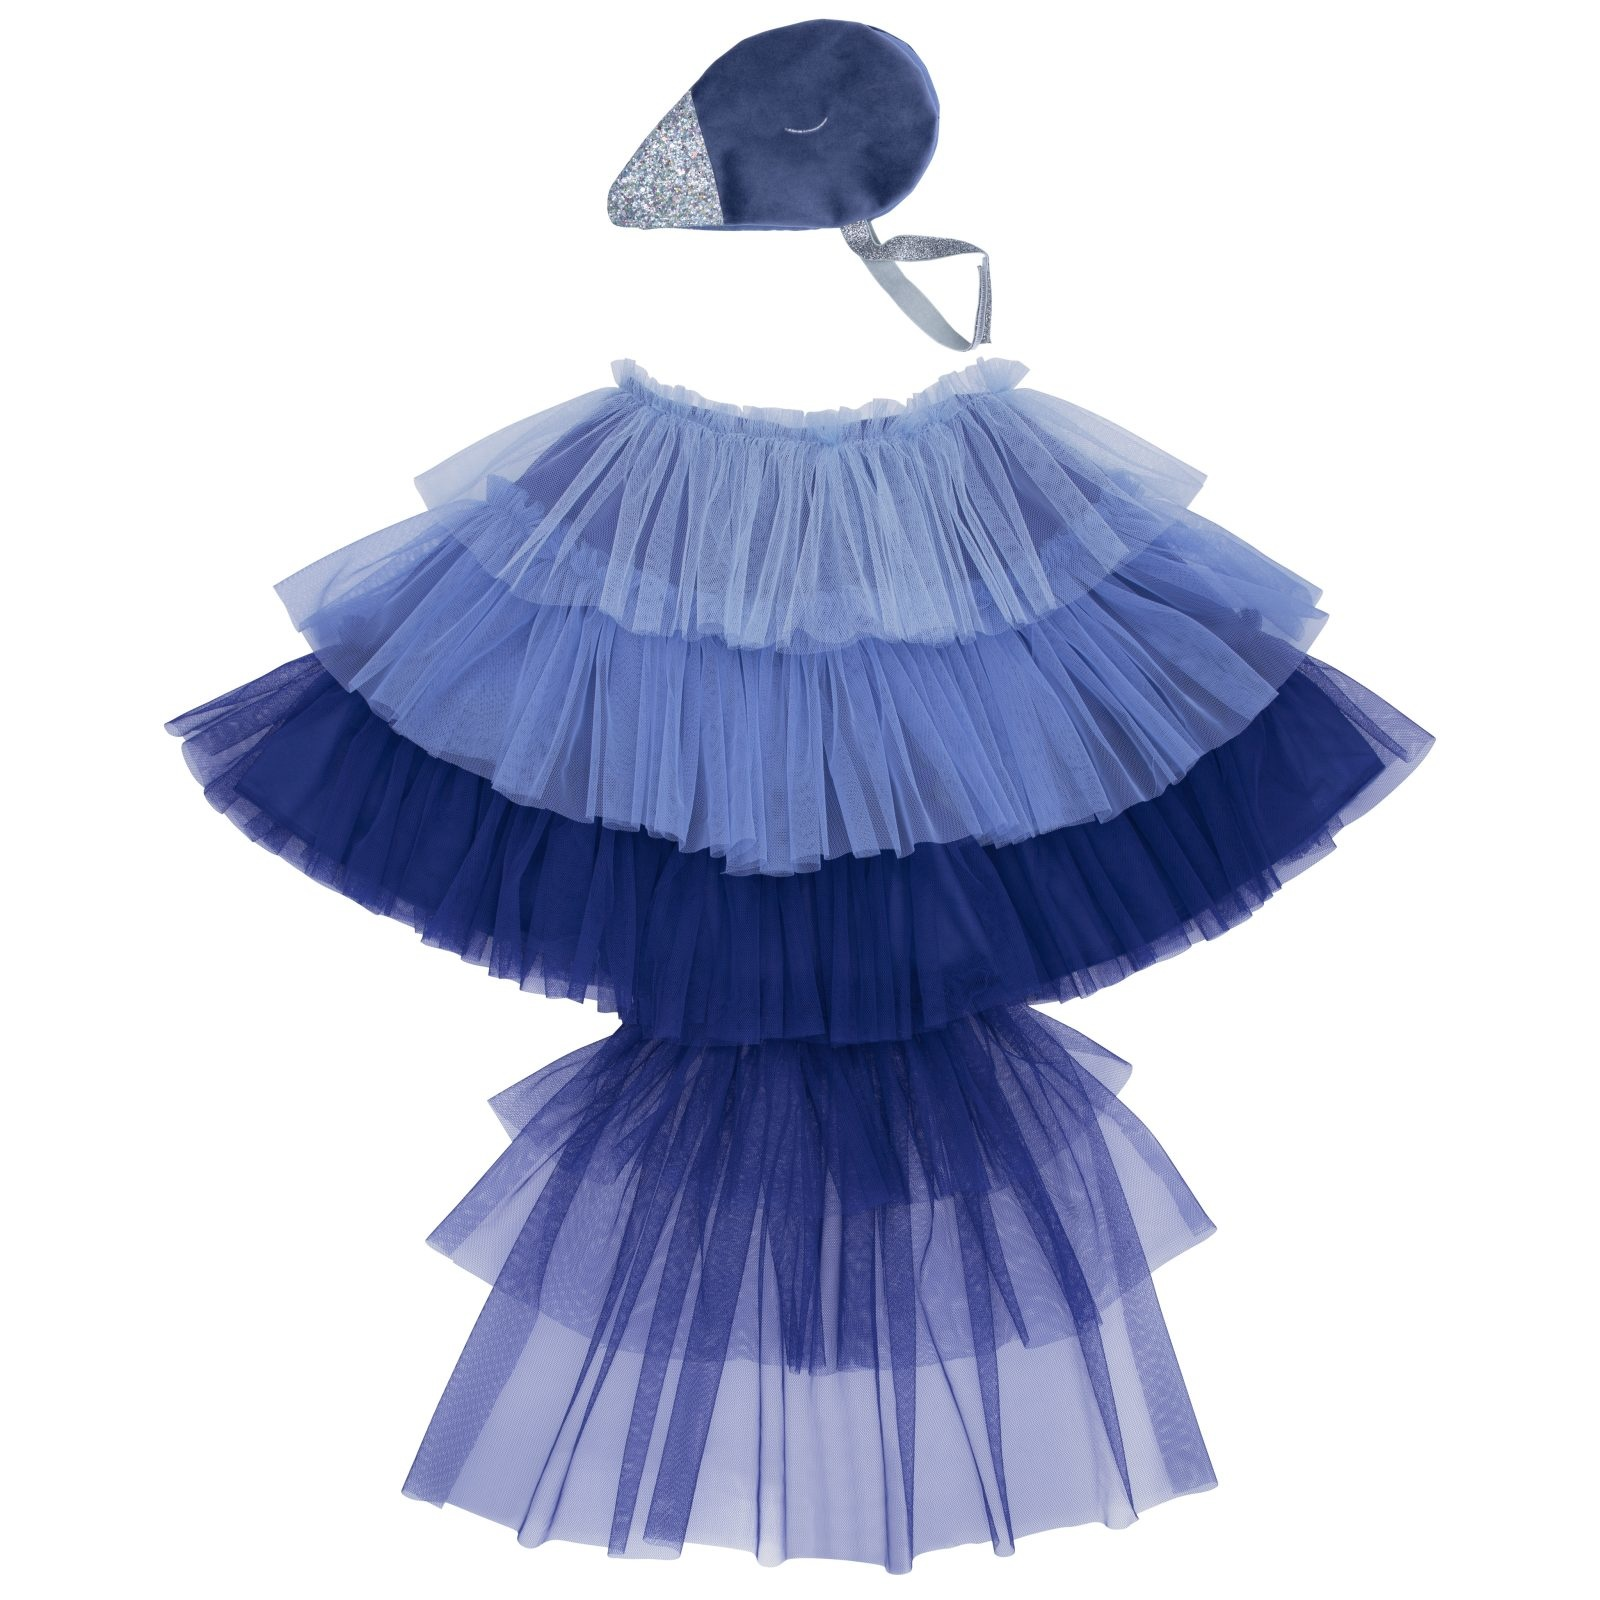 MERIMERI Blue Bird cape dress-up